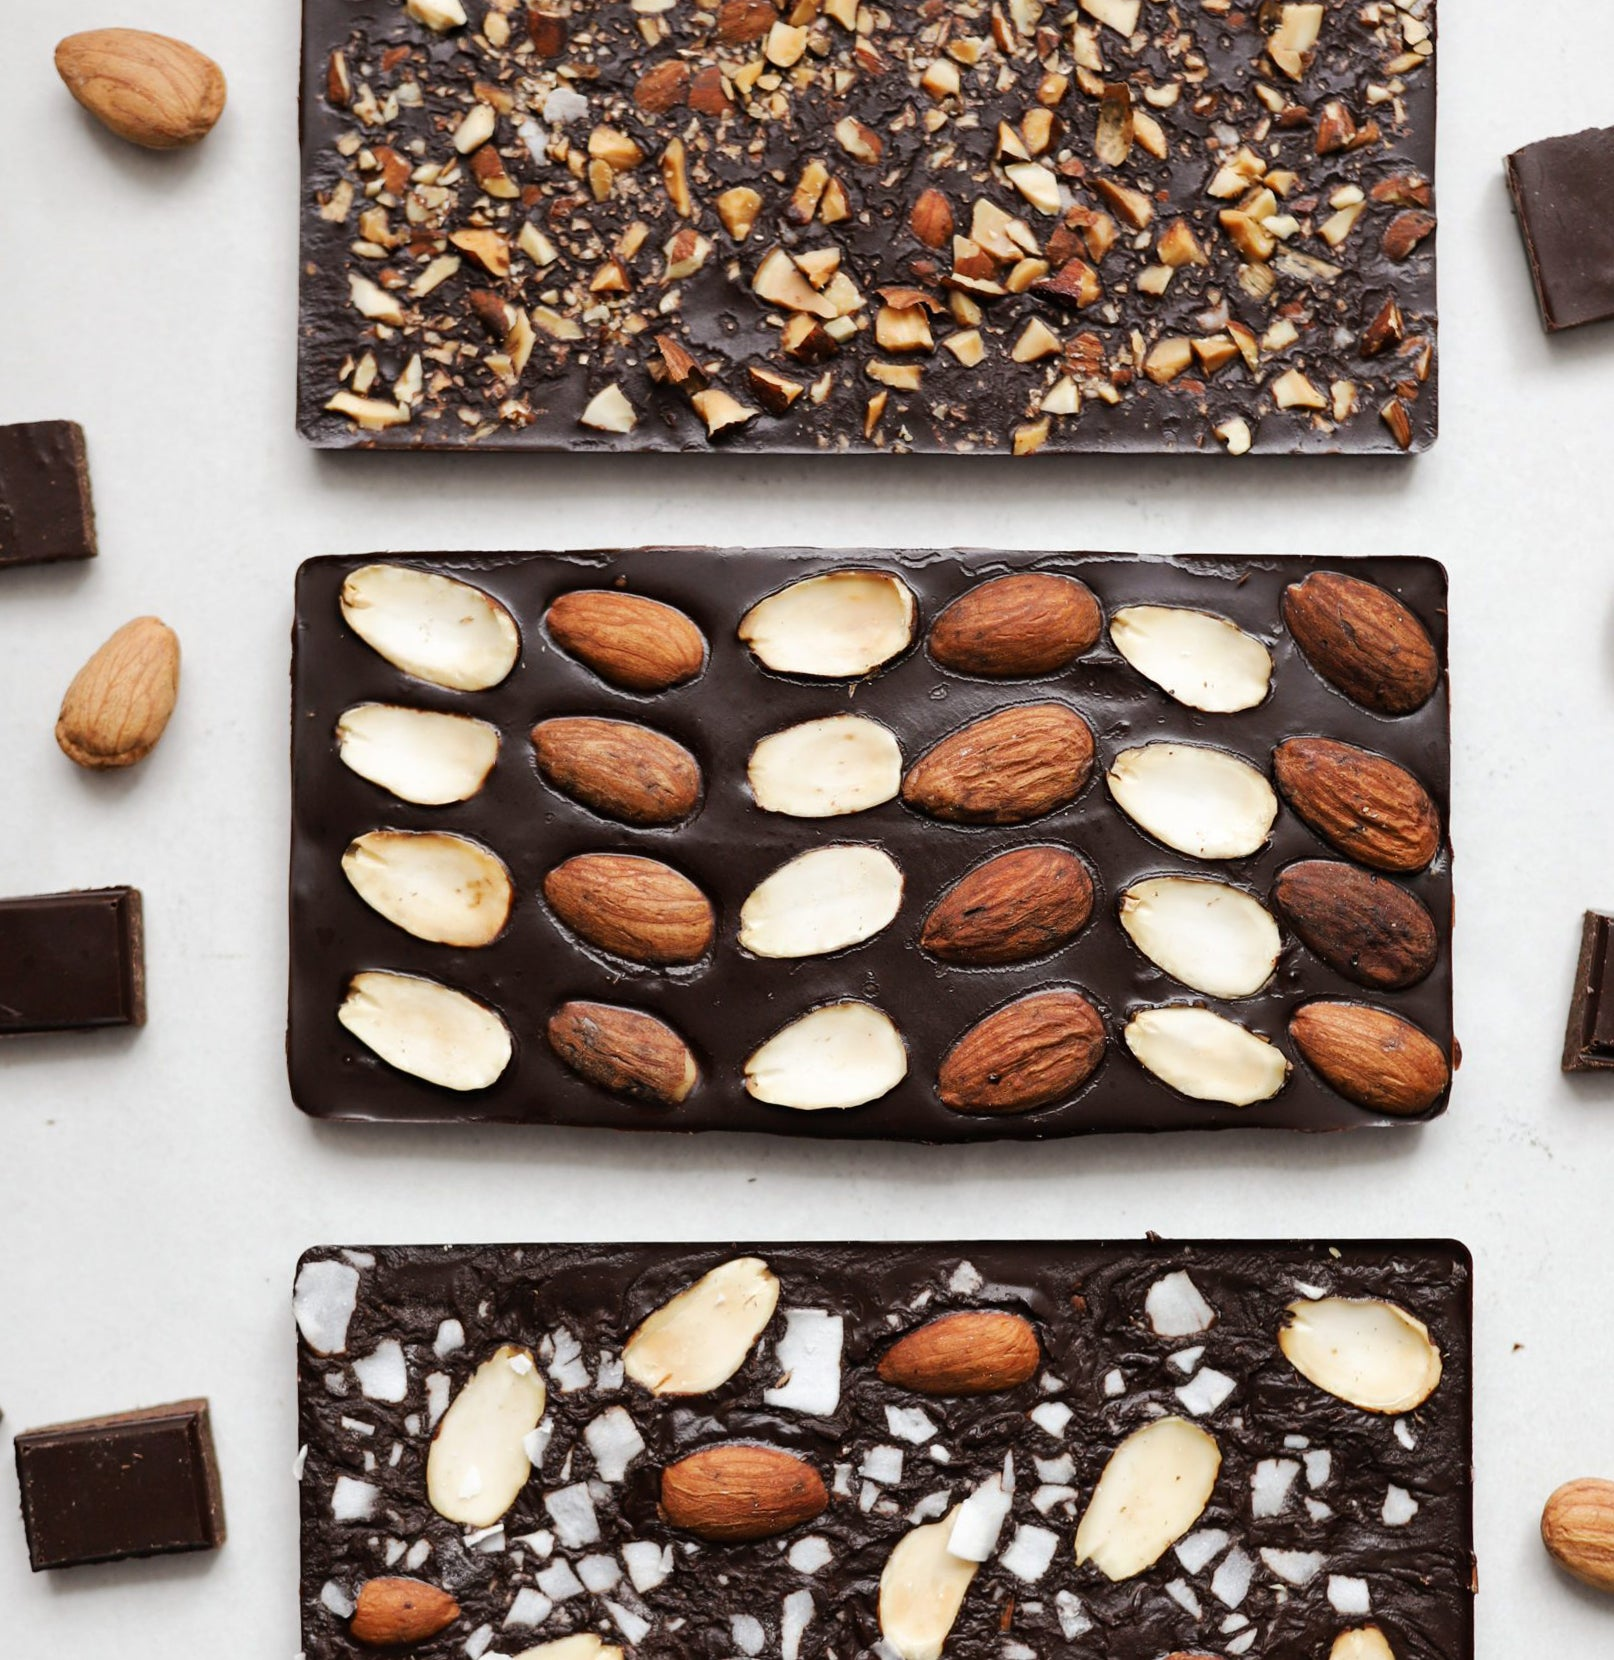 Homemade Dark Chocolate Bars With Almonds